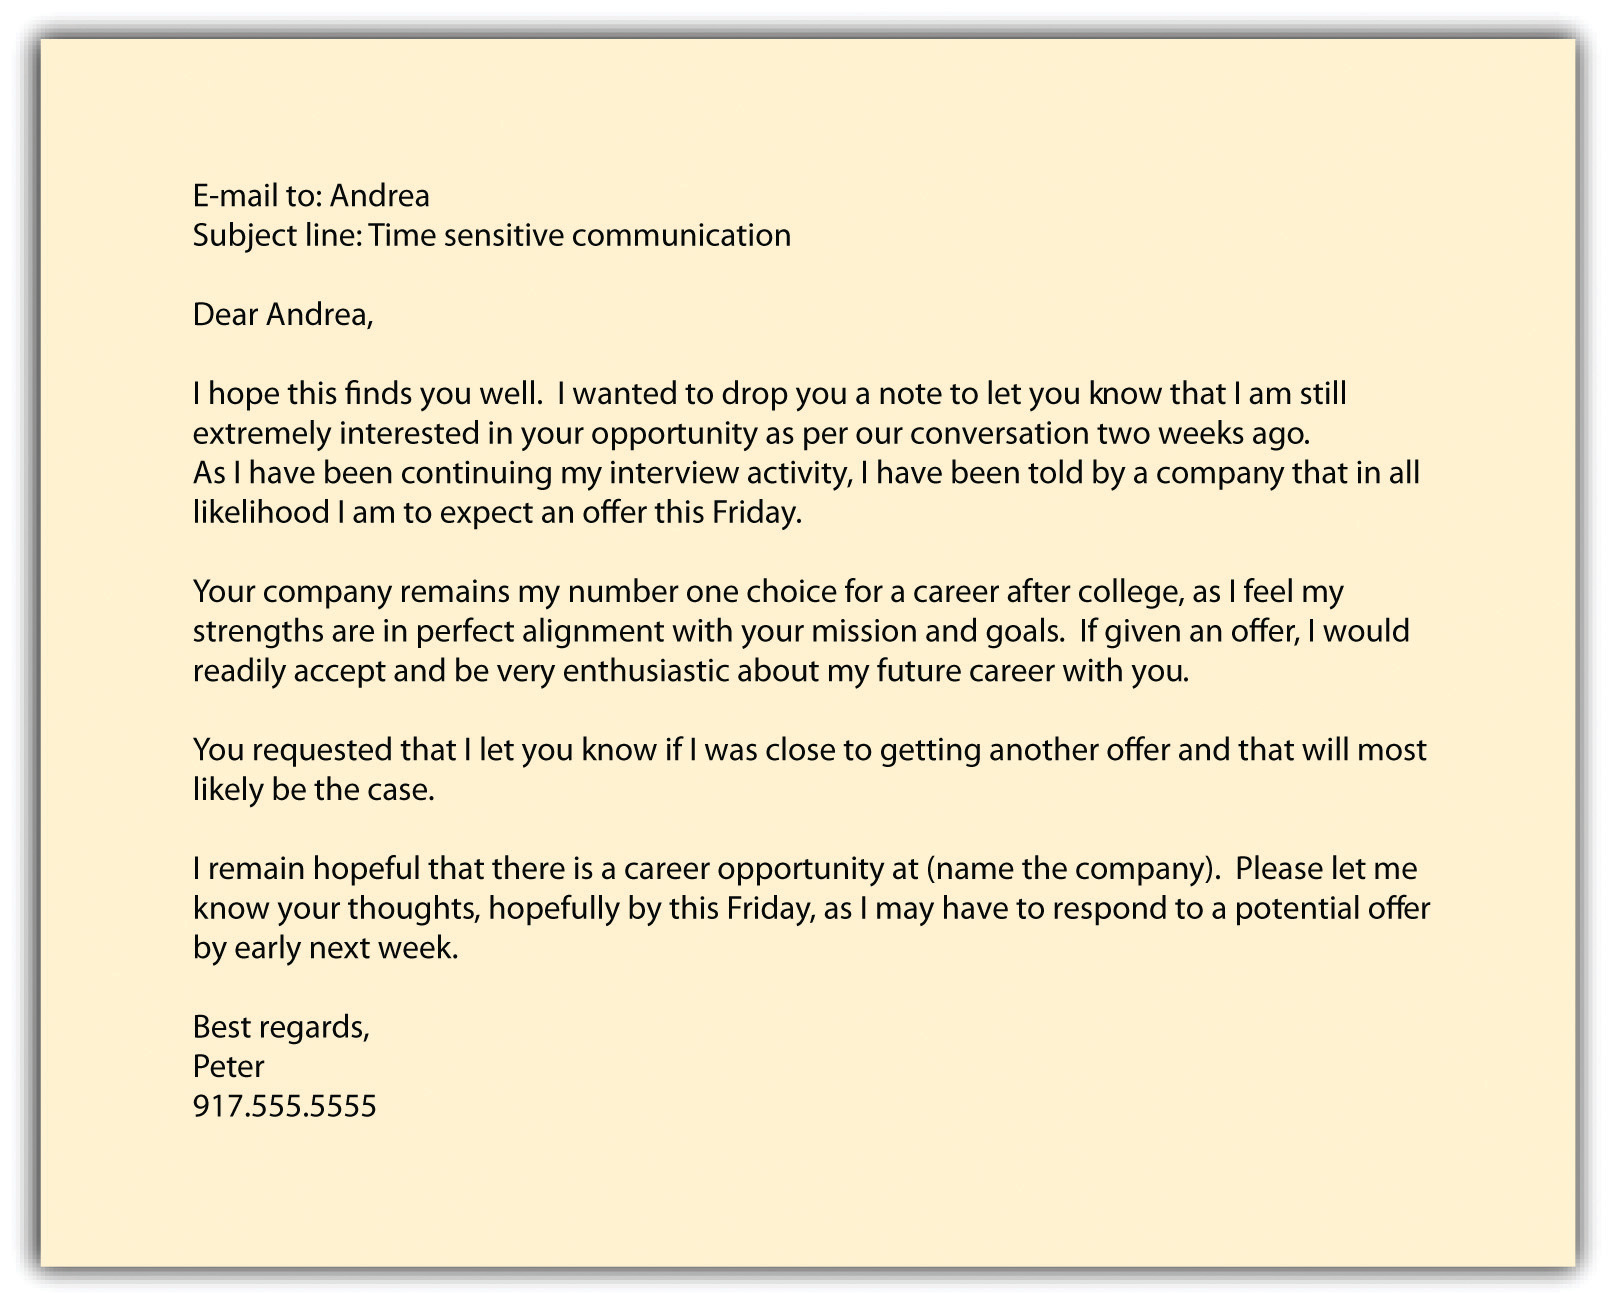 letter of offer to successful applicant